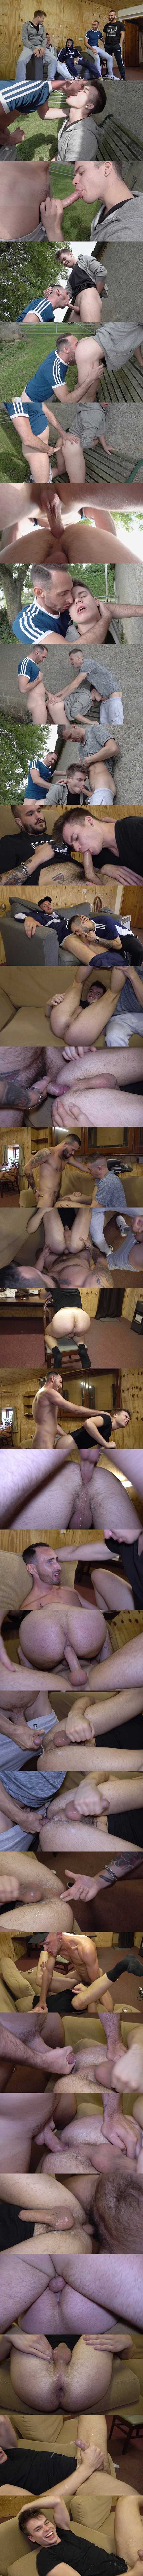 Hung Young Brit, Aron, Mike and their fuck buddies take turns barebacking cute farm boy Johnny's tight bubble ass before Johnny take 5 loads in the ass at Hungyoungbrit 01